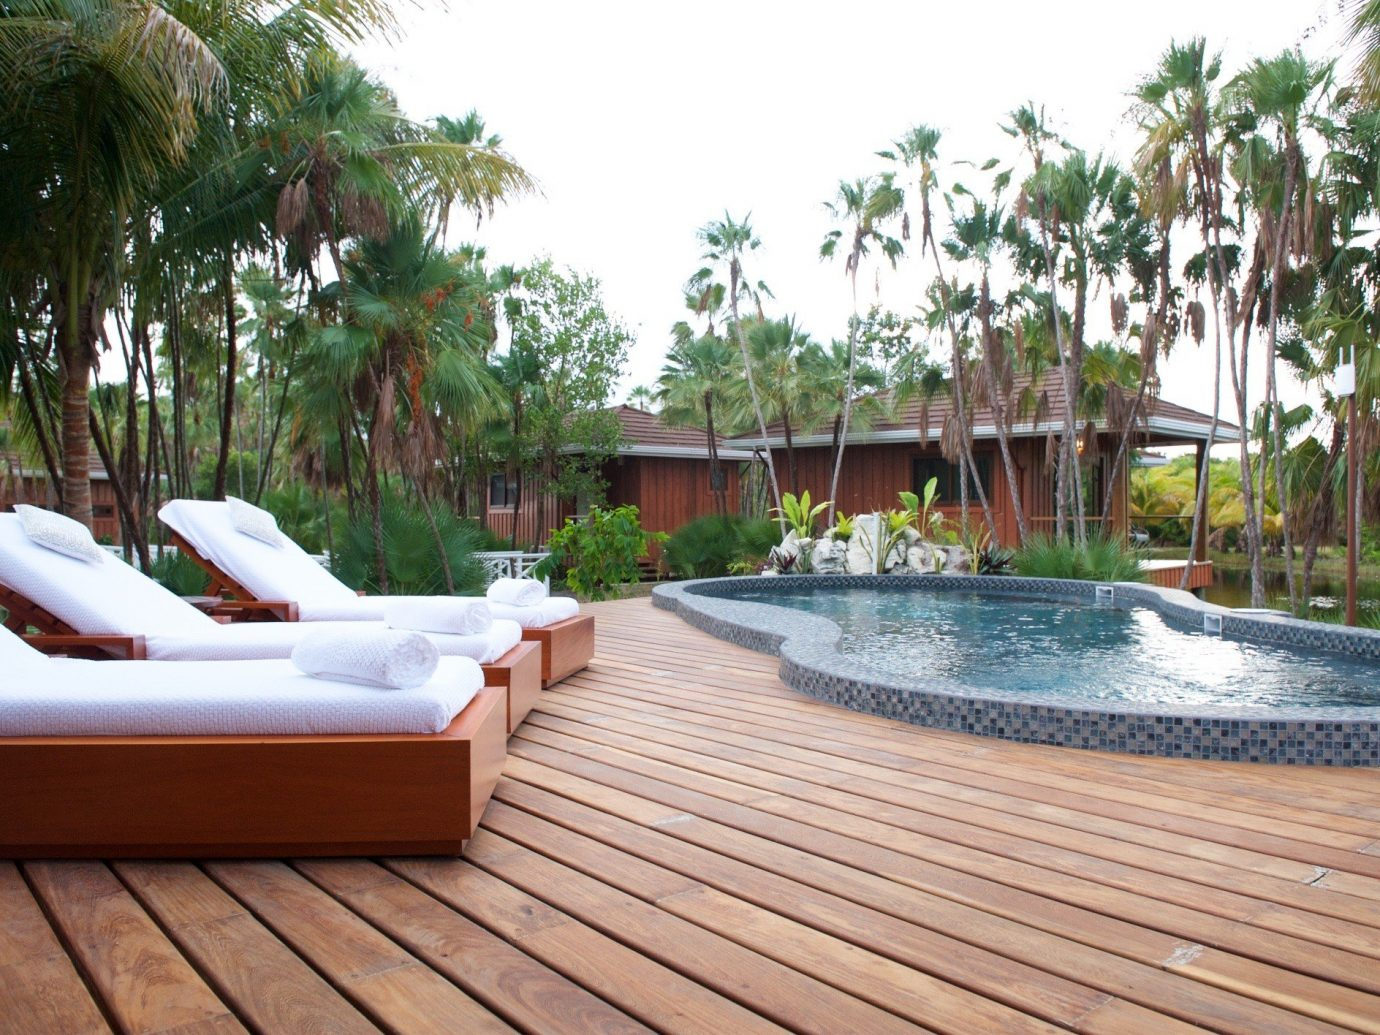 Trip Ideas tree outdoor swimming pool property leisure Resort Villa vacation backyard estate outdoor structure real estate jacuzzi eco hotel Deck furniture